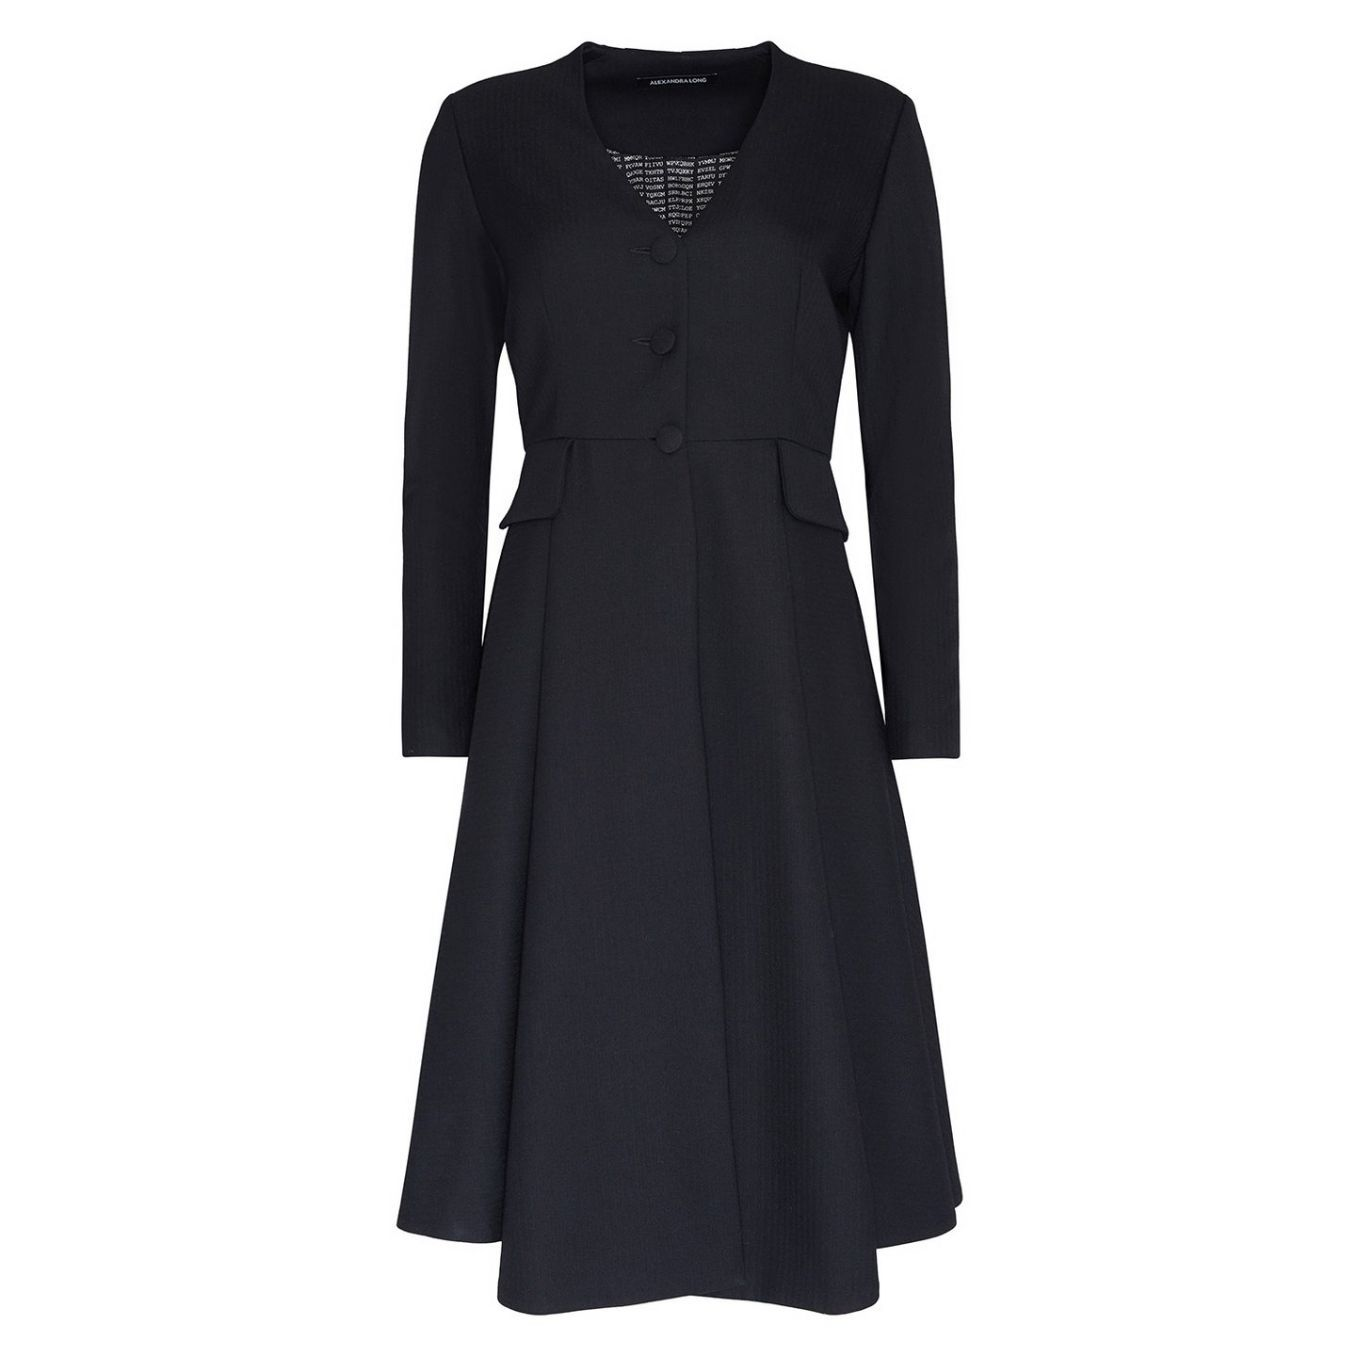 Winifred Black Coat Dress by Alexandra Long avalible at Natural x Lab